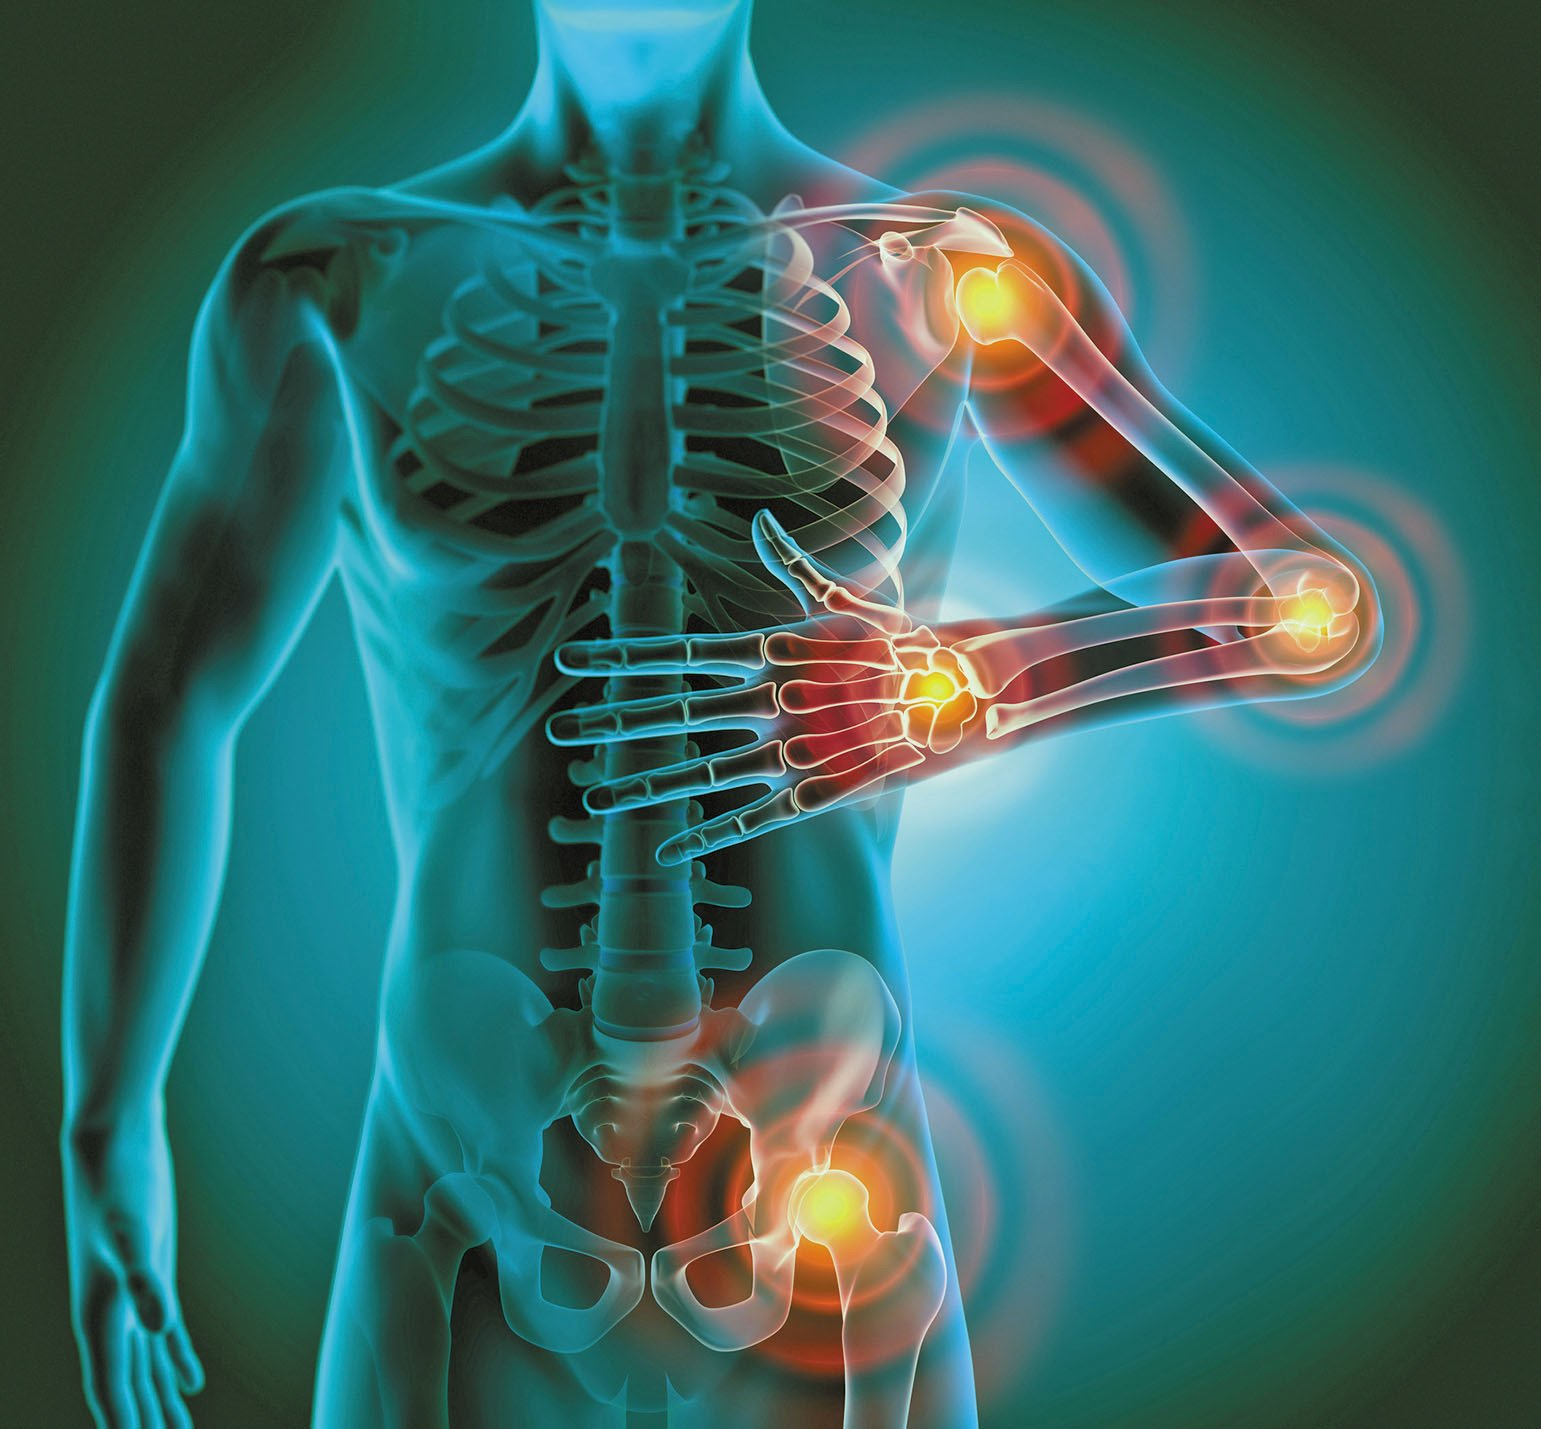 What Is Chronic Inflammation? What are infections that can trigger it?